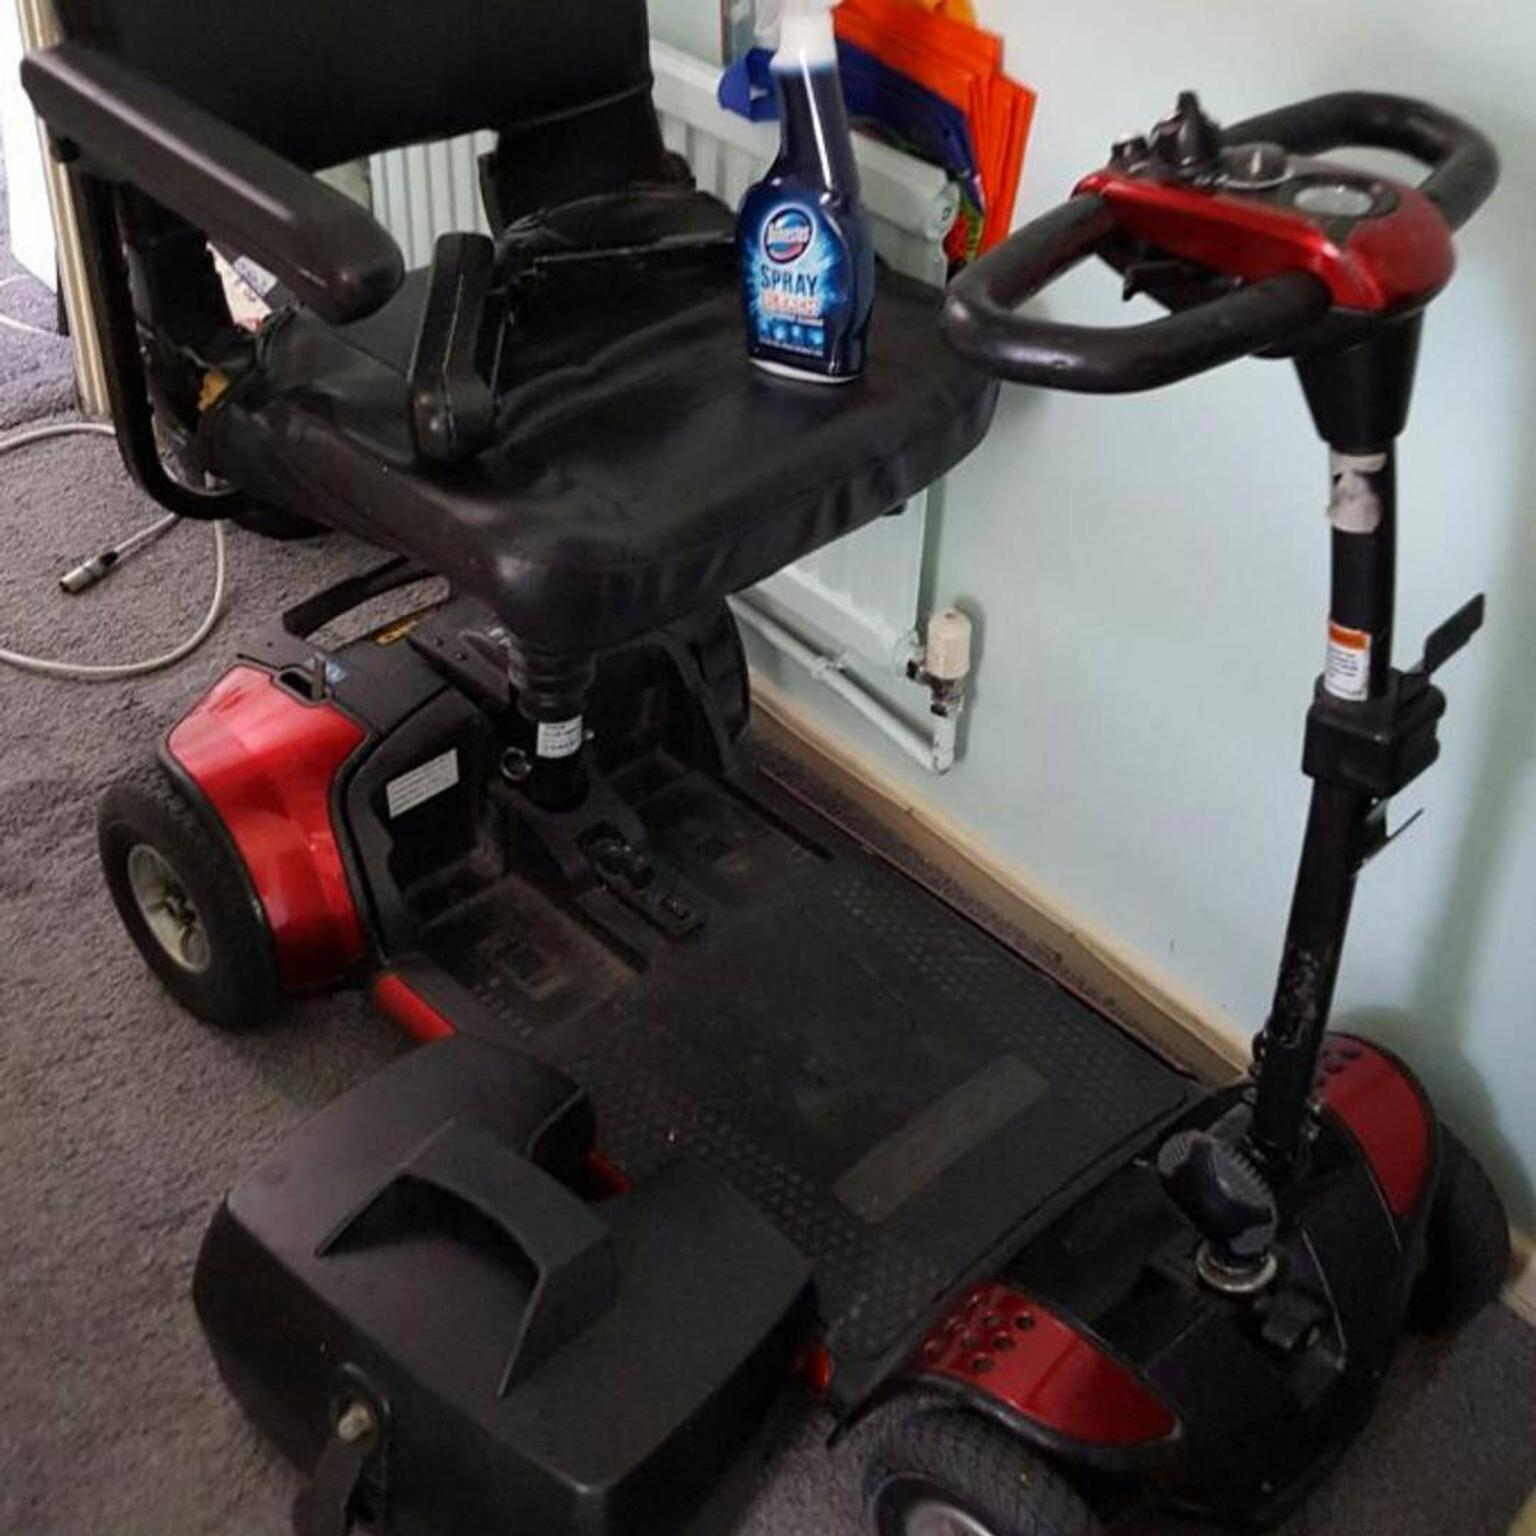 Used Mobility Scooters For Sale >> Used Mobility Scooter